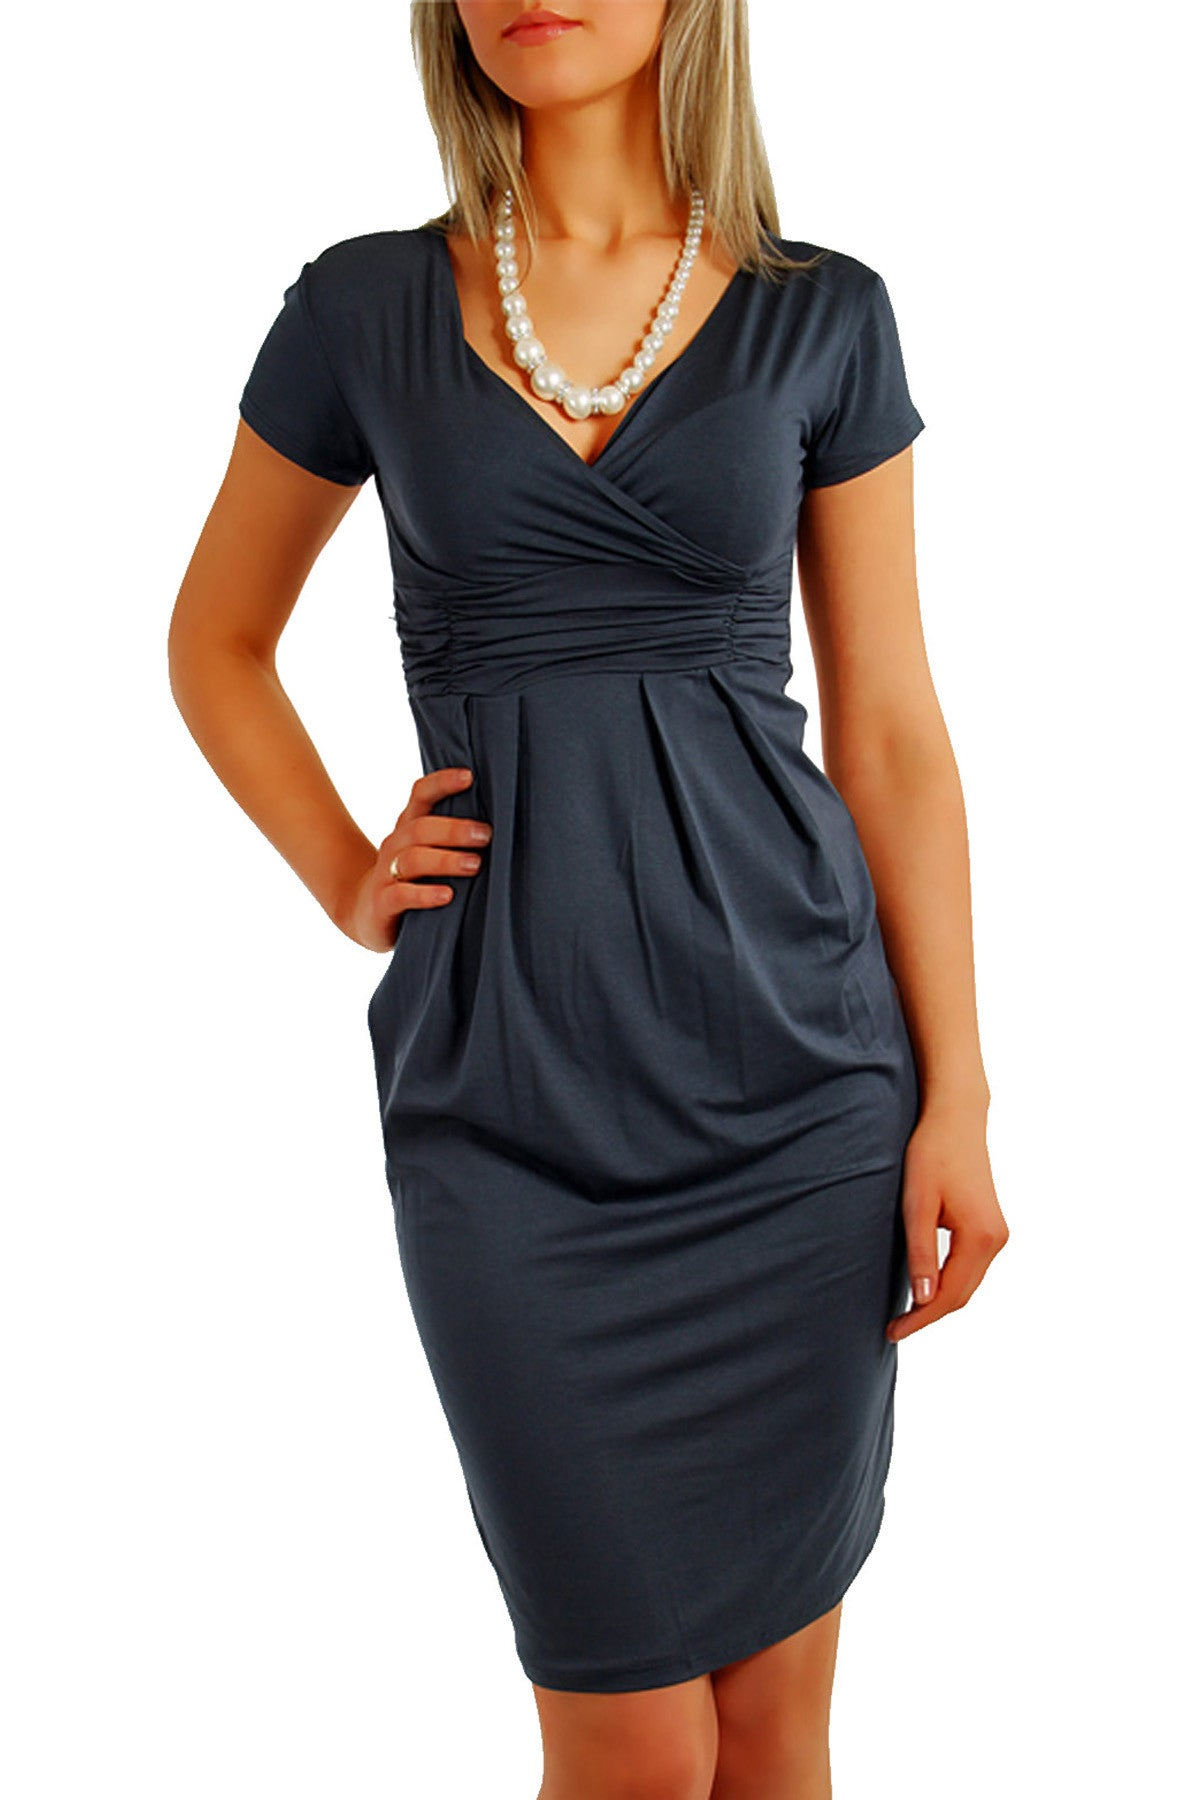 Office maternity dresses image collections braidsmaid dress maternity office dress gallery braidsmaid dress cocktail dress corporate maternity dress choice image braidsmaid dress corporate ombrellifo Choice Image